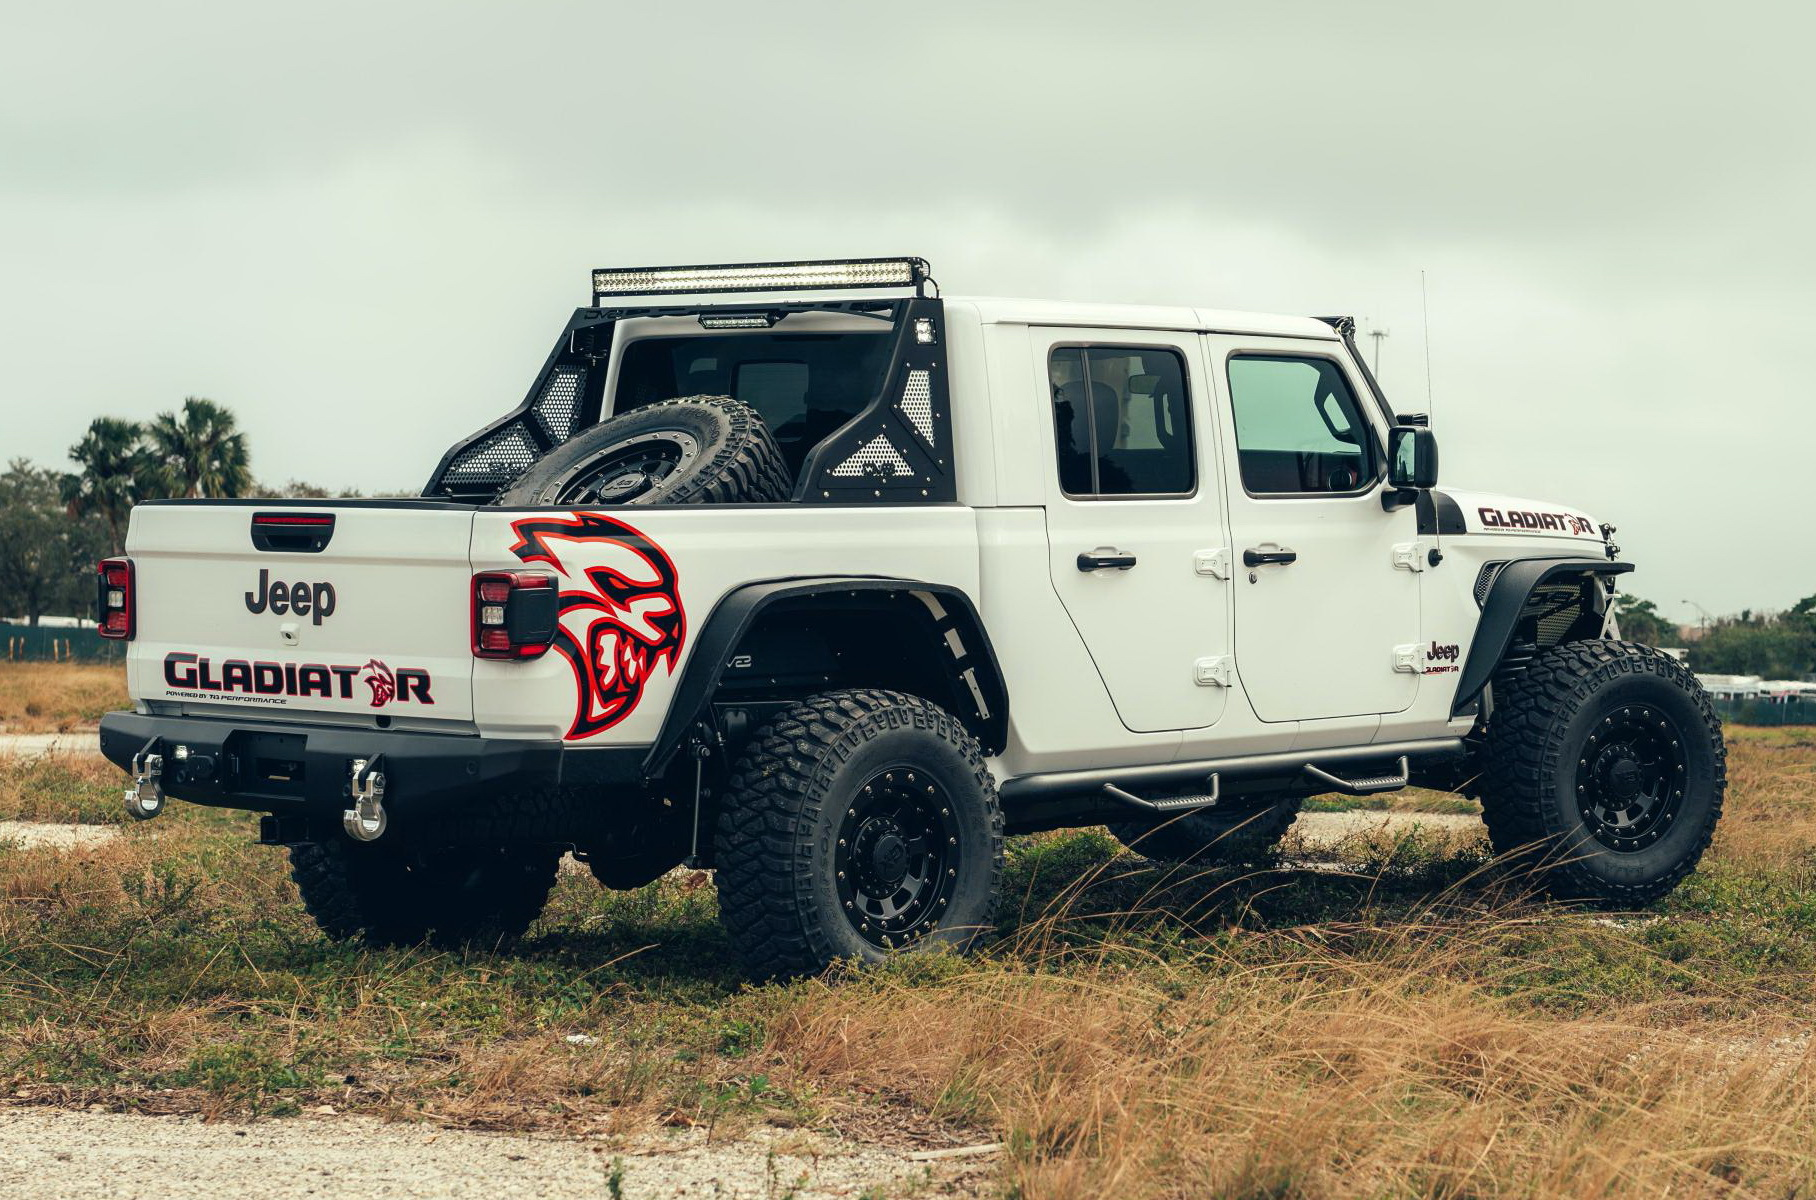 Florida-based tuner TR3 Performance has unveiled its own take on the latest Gladiator truck. Want a look?